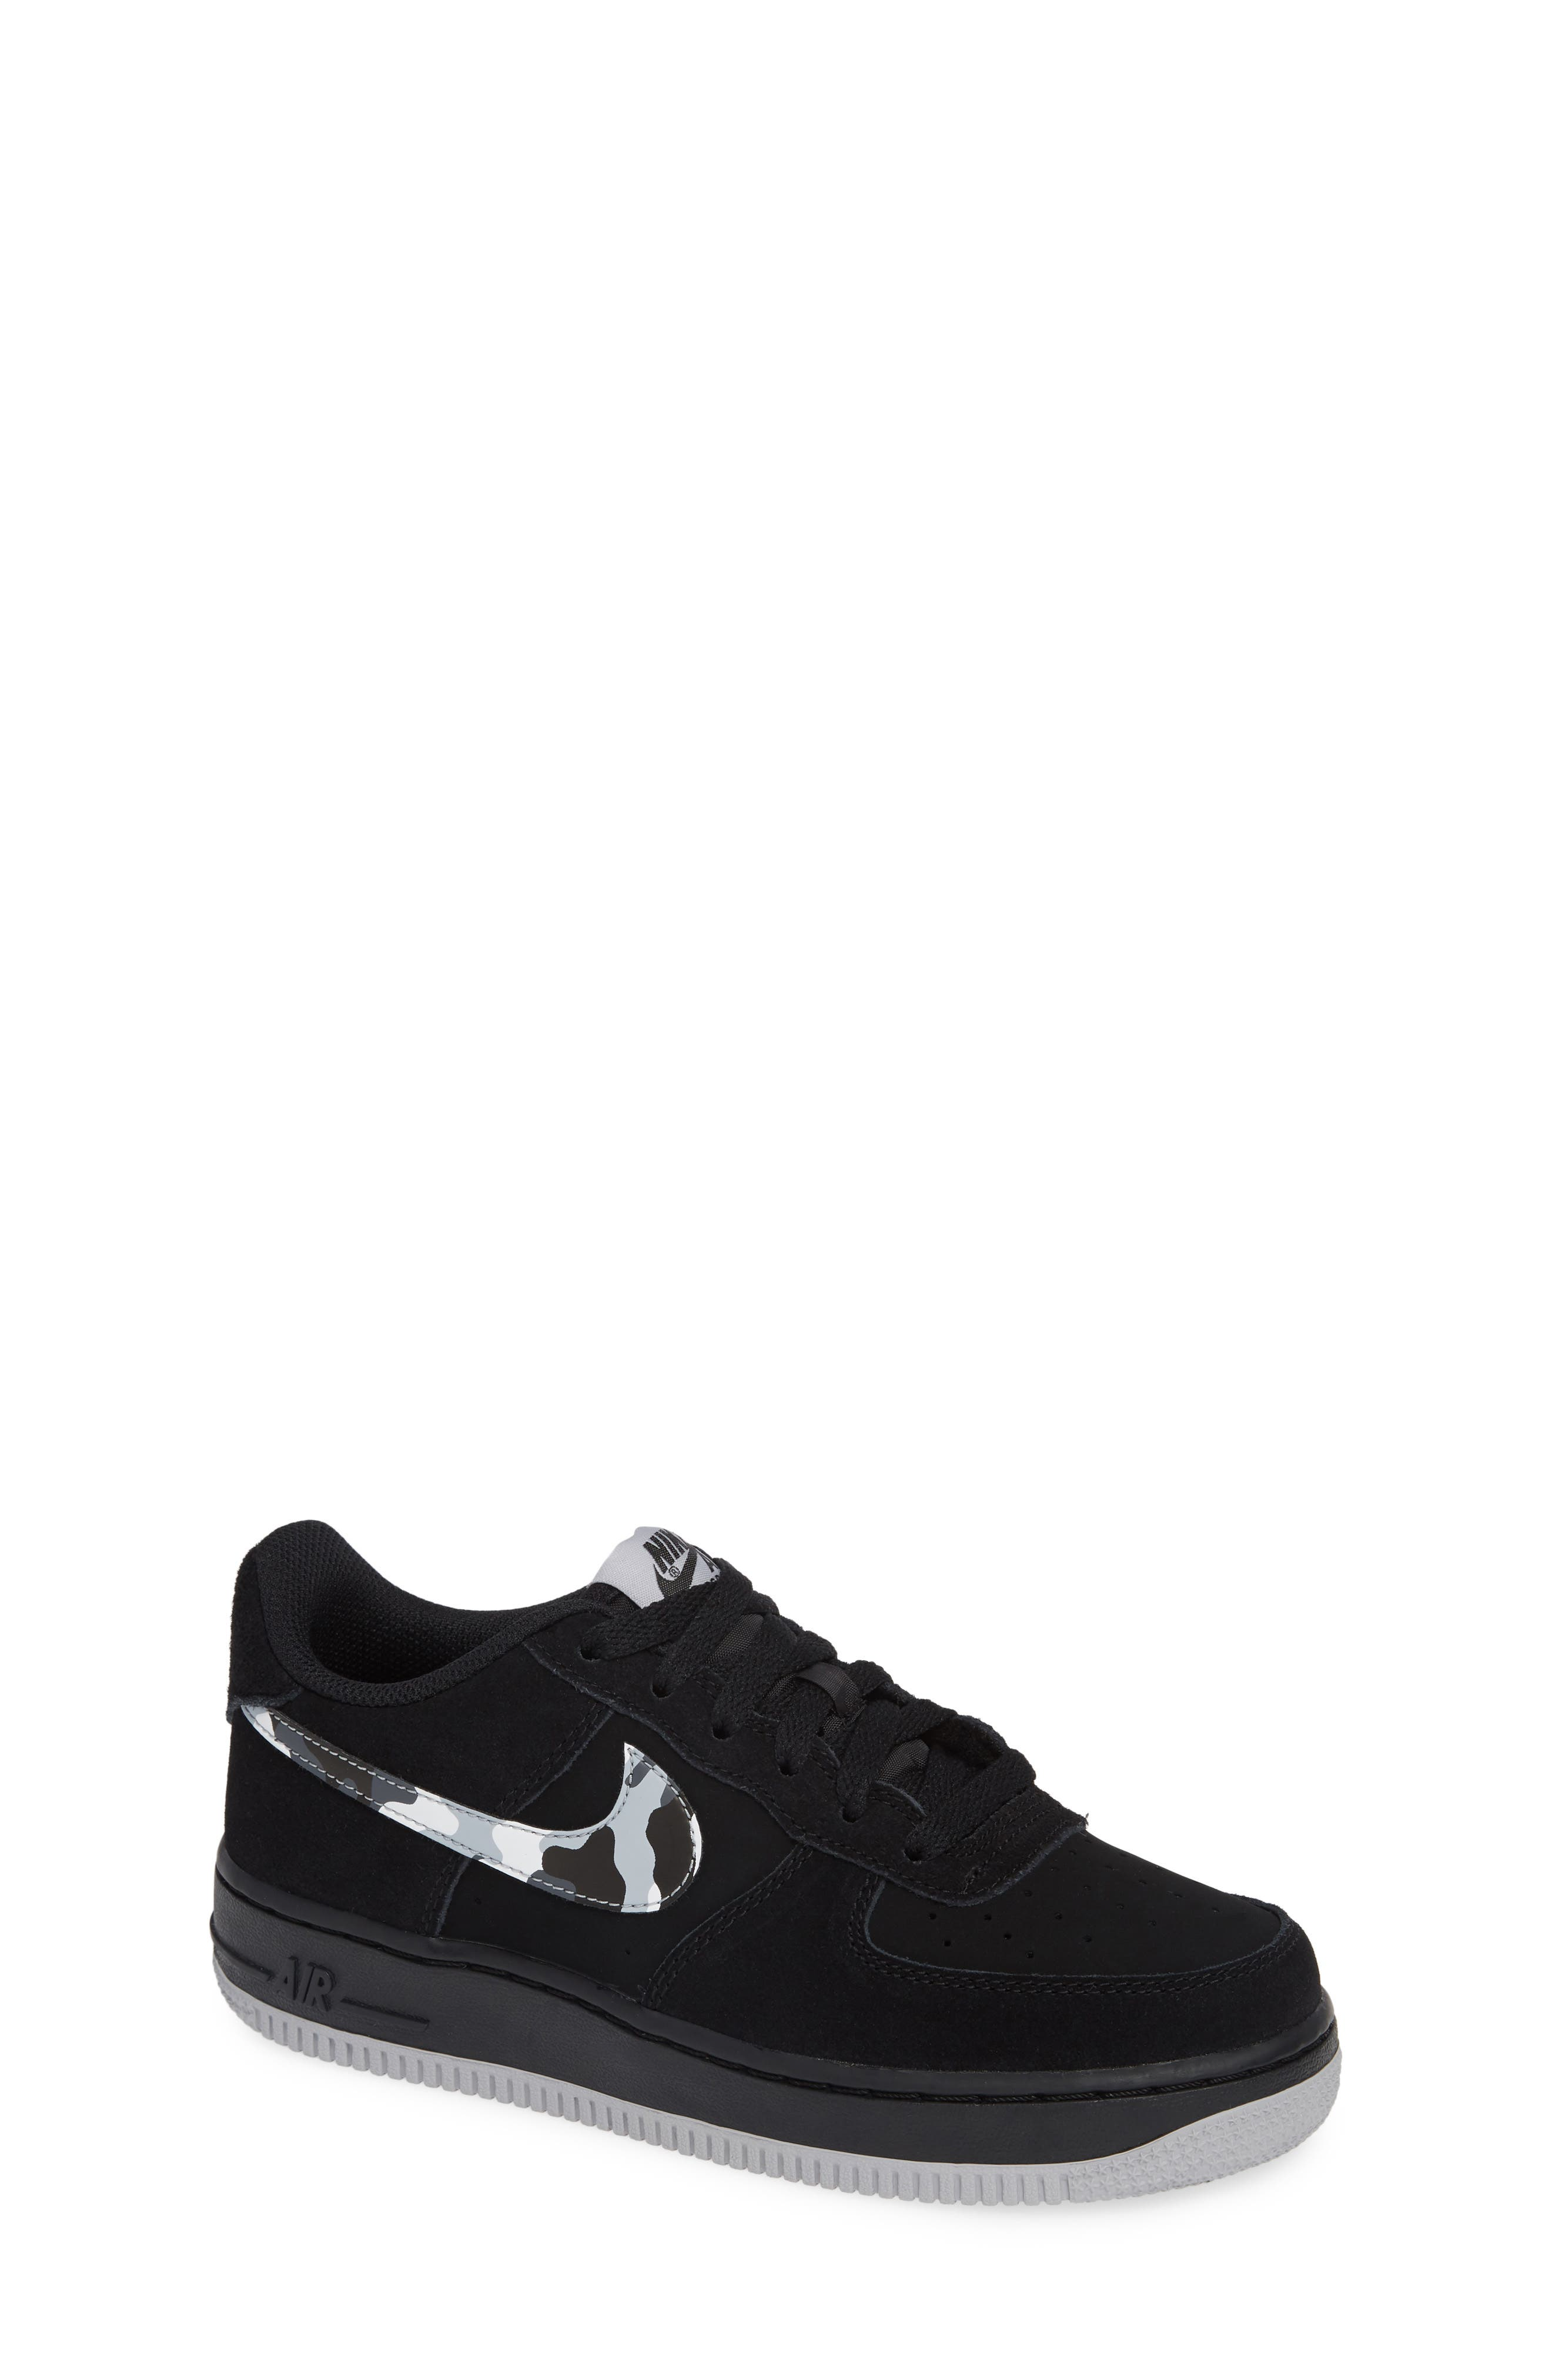 Air Force 1 Sneaker,                         Main,                         color, BLACK/ GREY/ WHITE